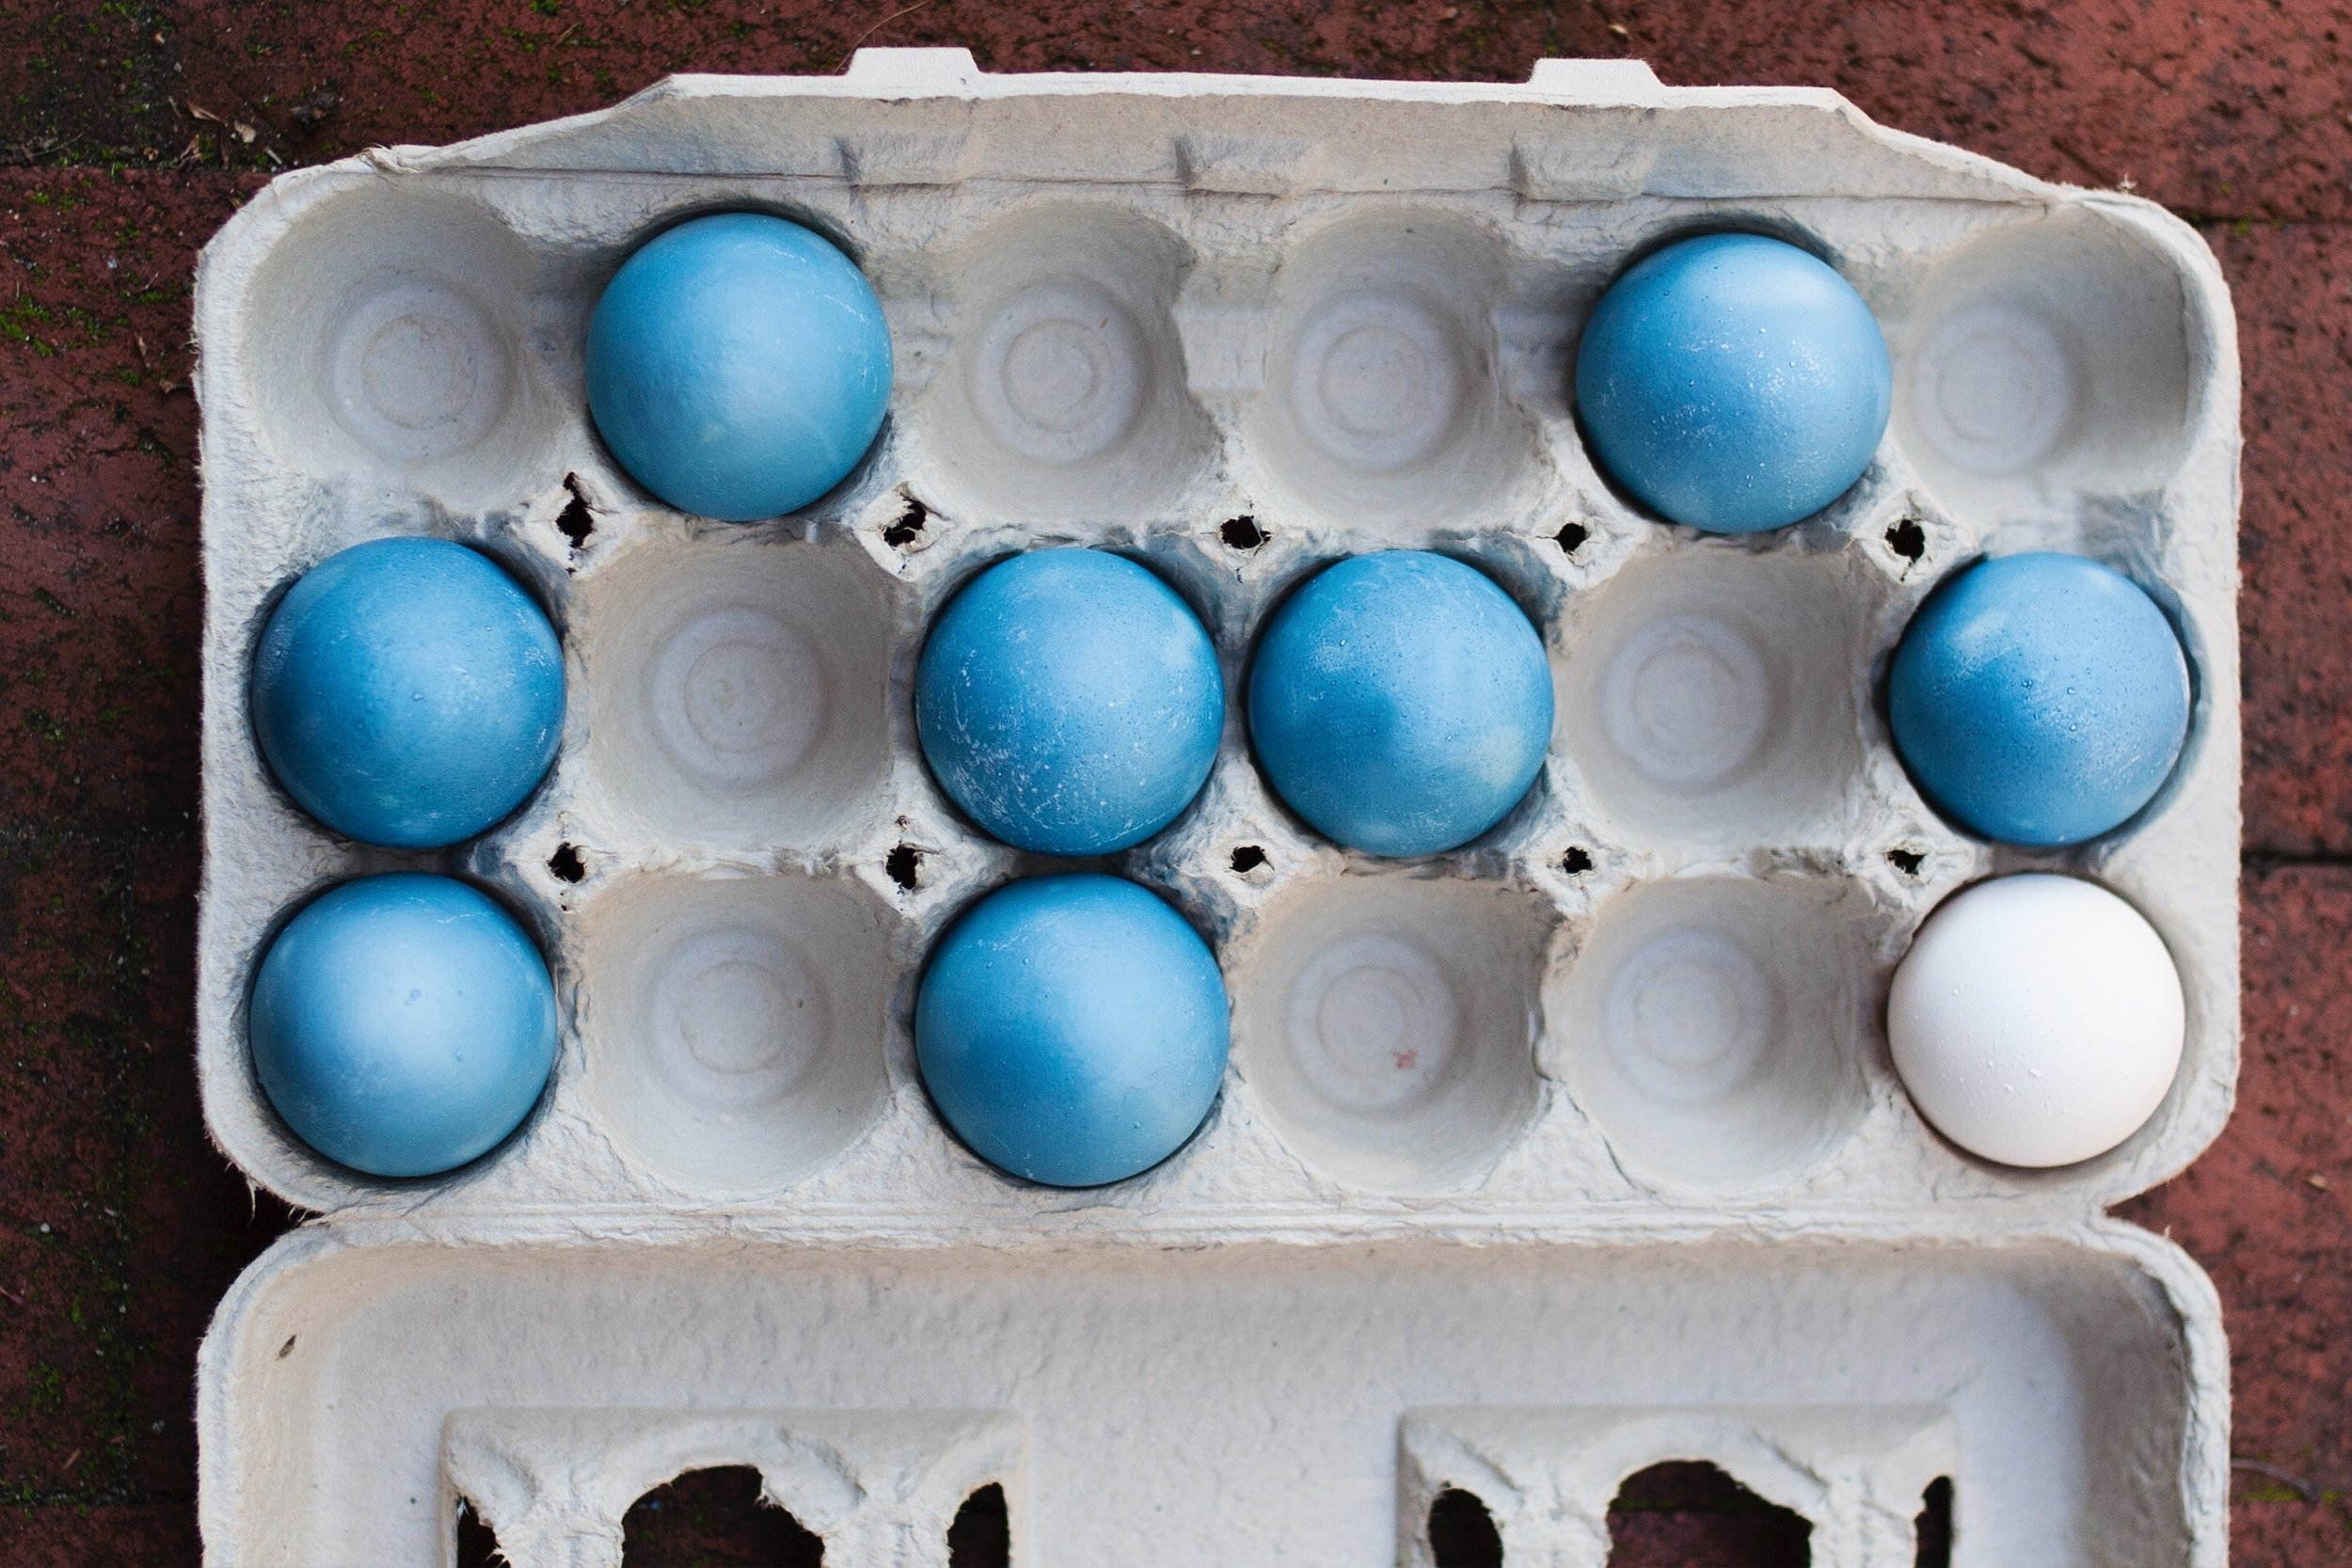 cabbage-dyed-easter-eggs.JPG